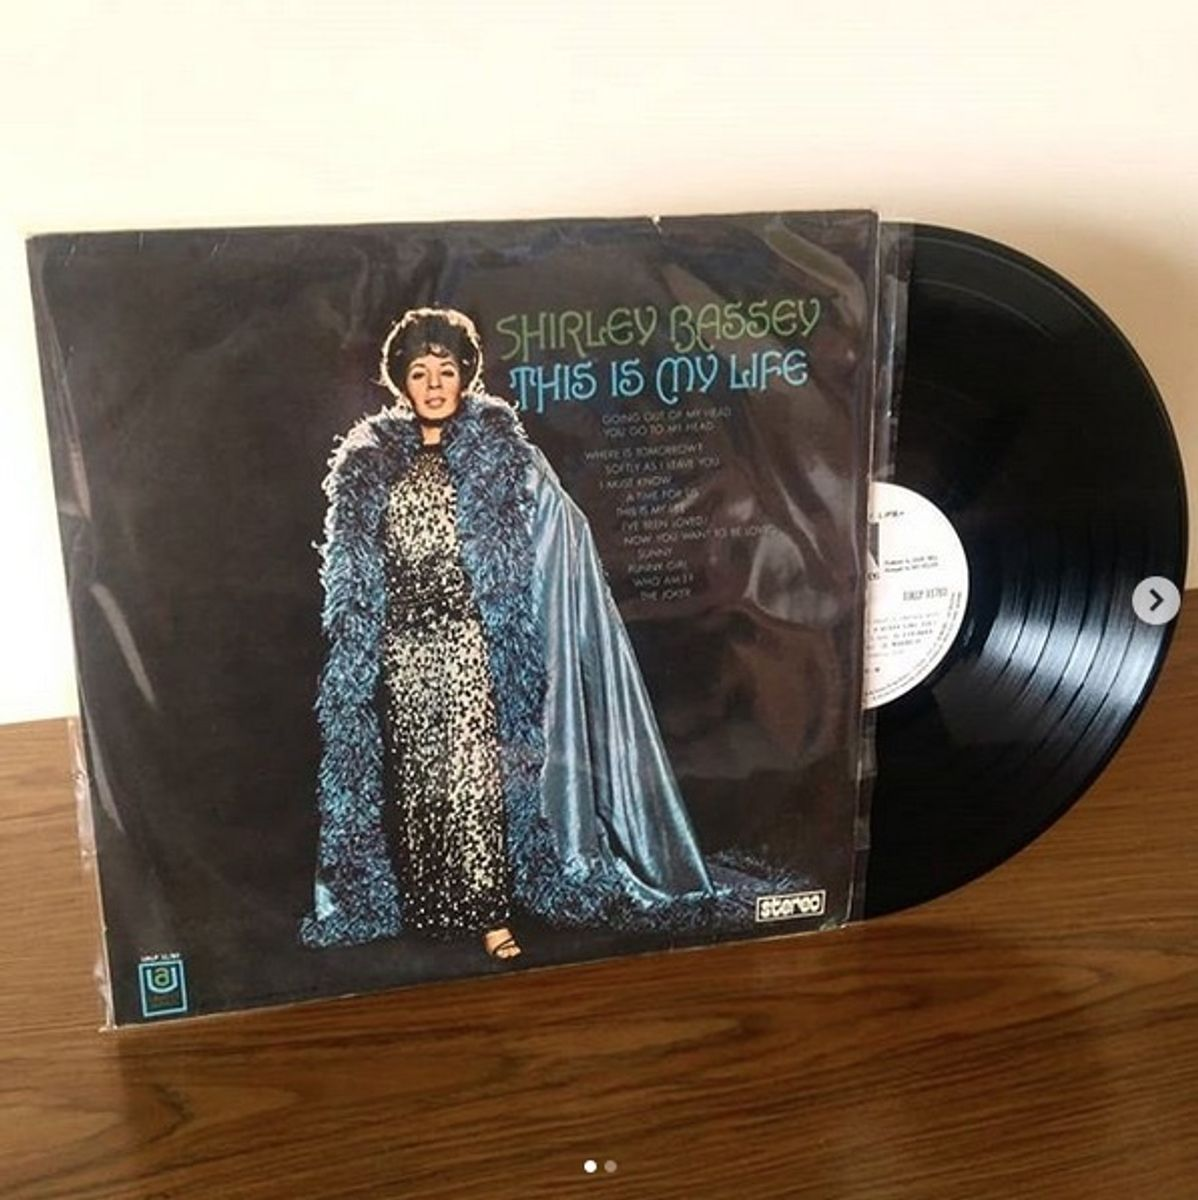 vinil lp shirley bassey - this is my life - antiquário shirley bassey